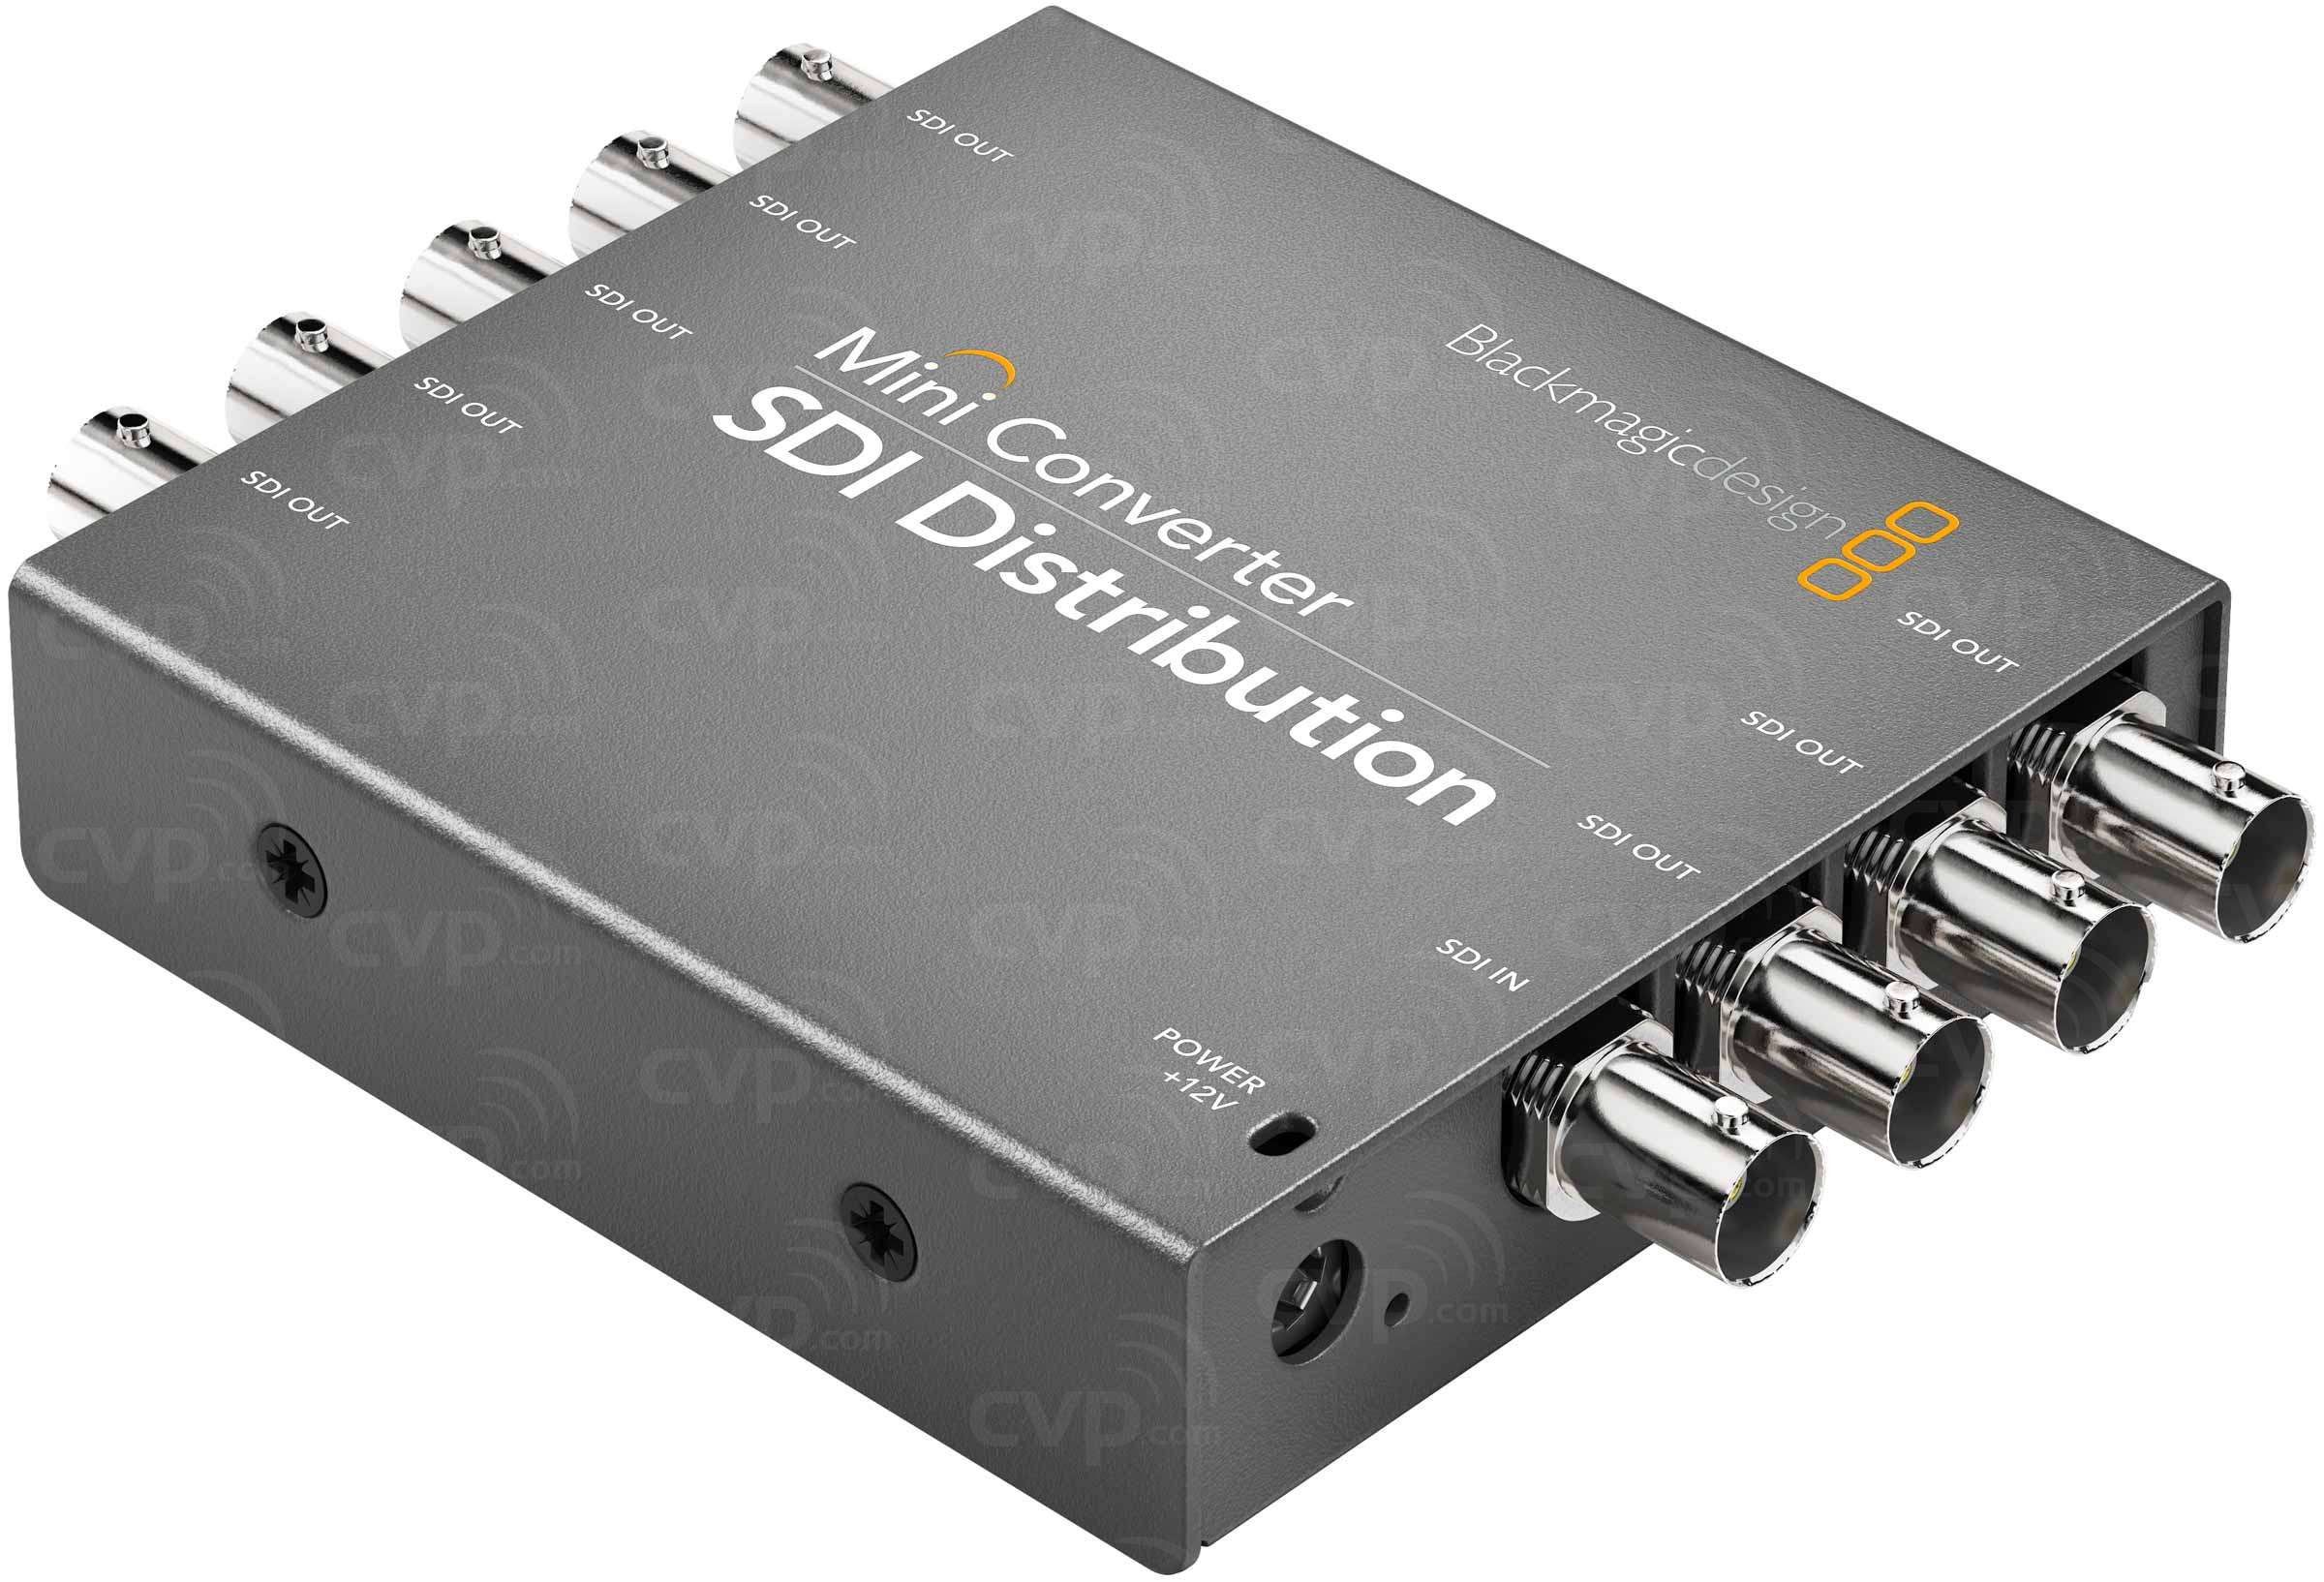 Blackmagic Design SDI Distribution (BMD-CONVMSDIDA)